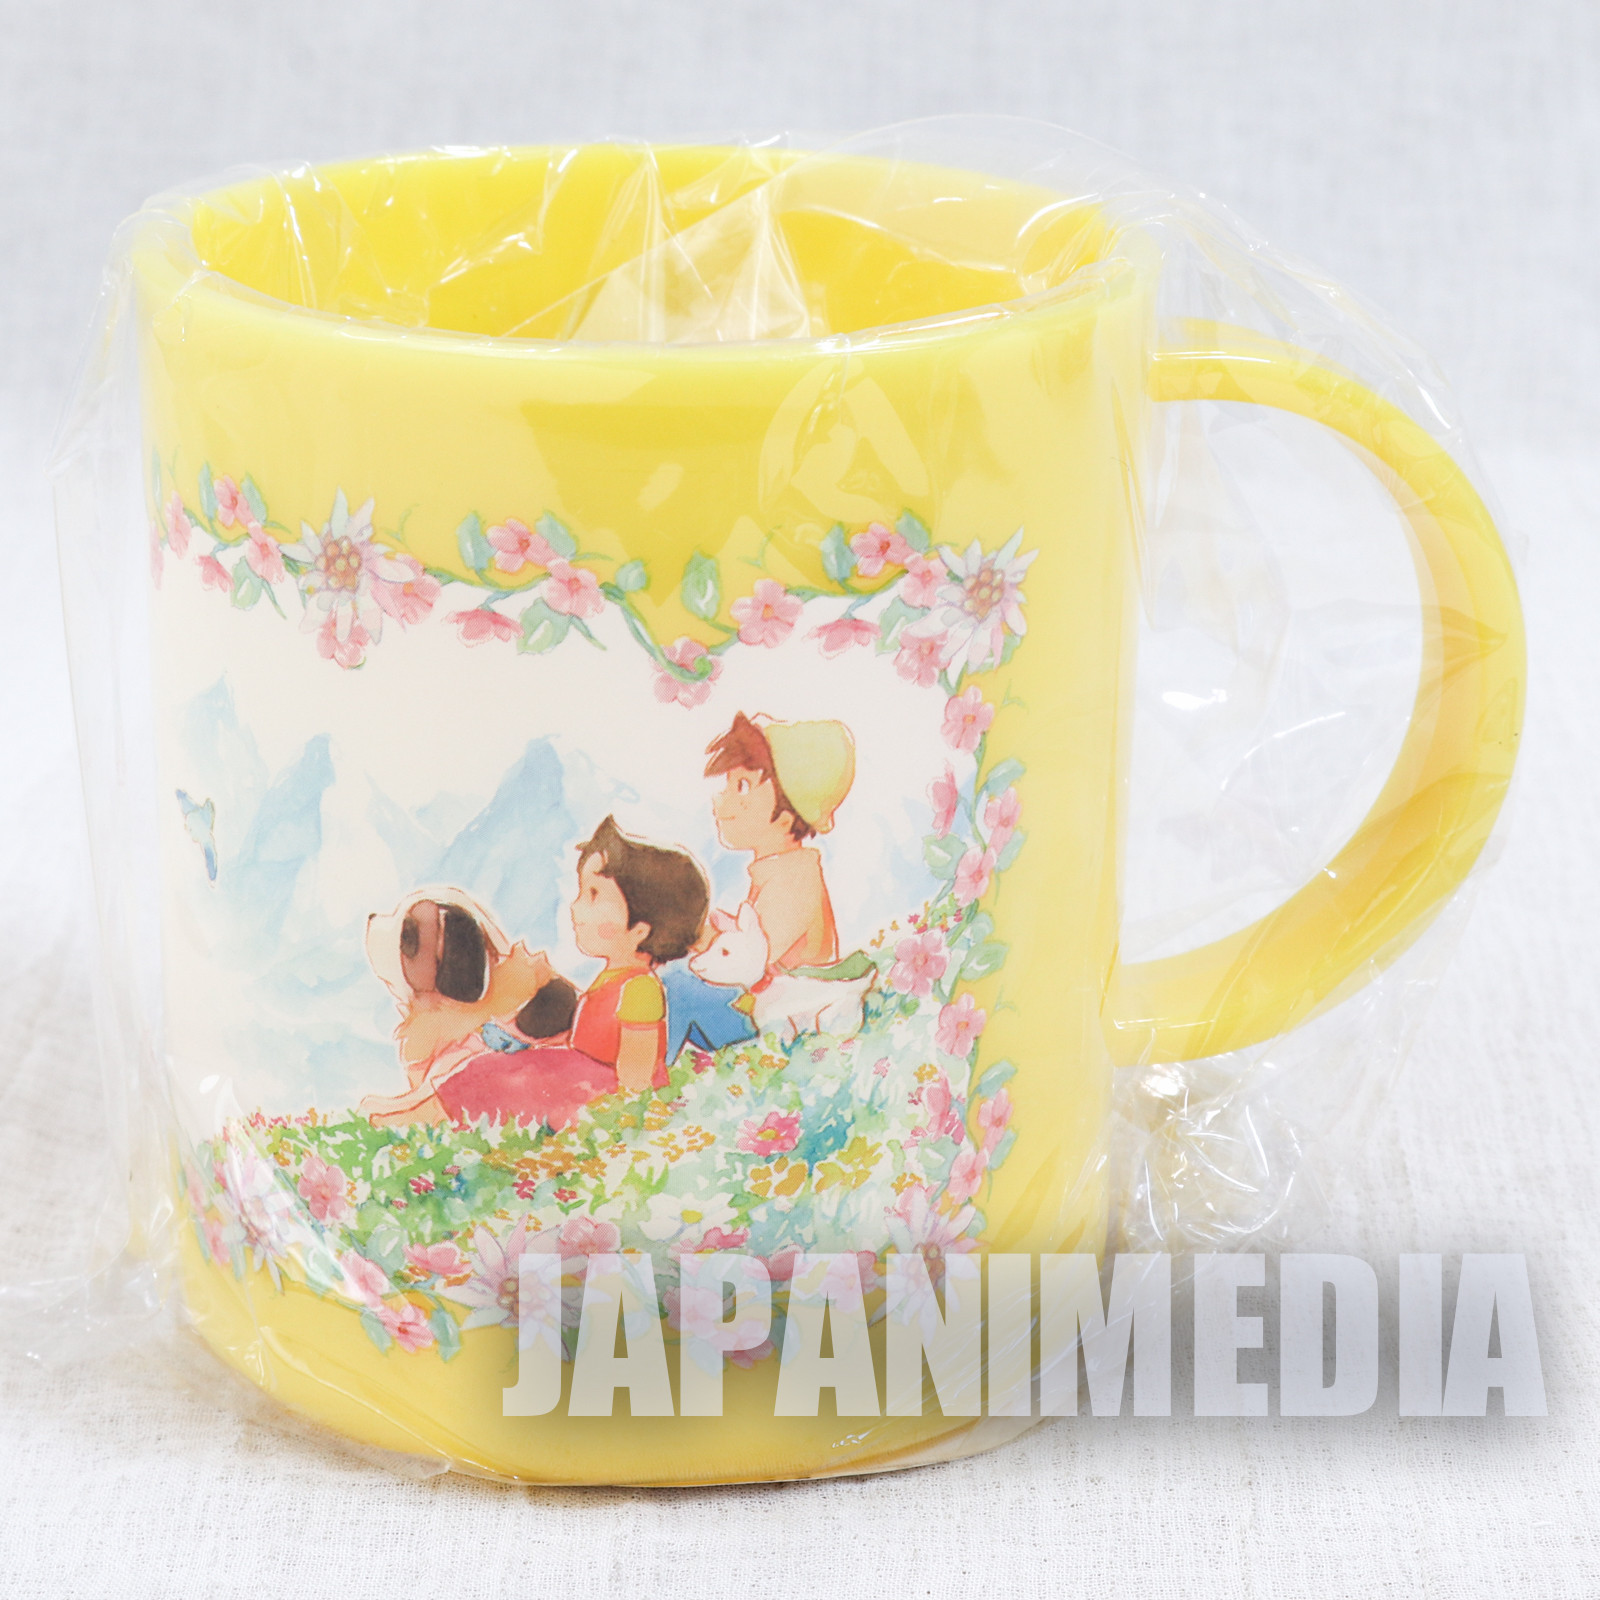 Heidi Girl of the Alps Plastic Mug Yellow ver. JAPAN ANIME